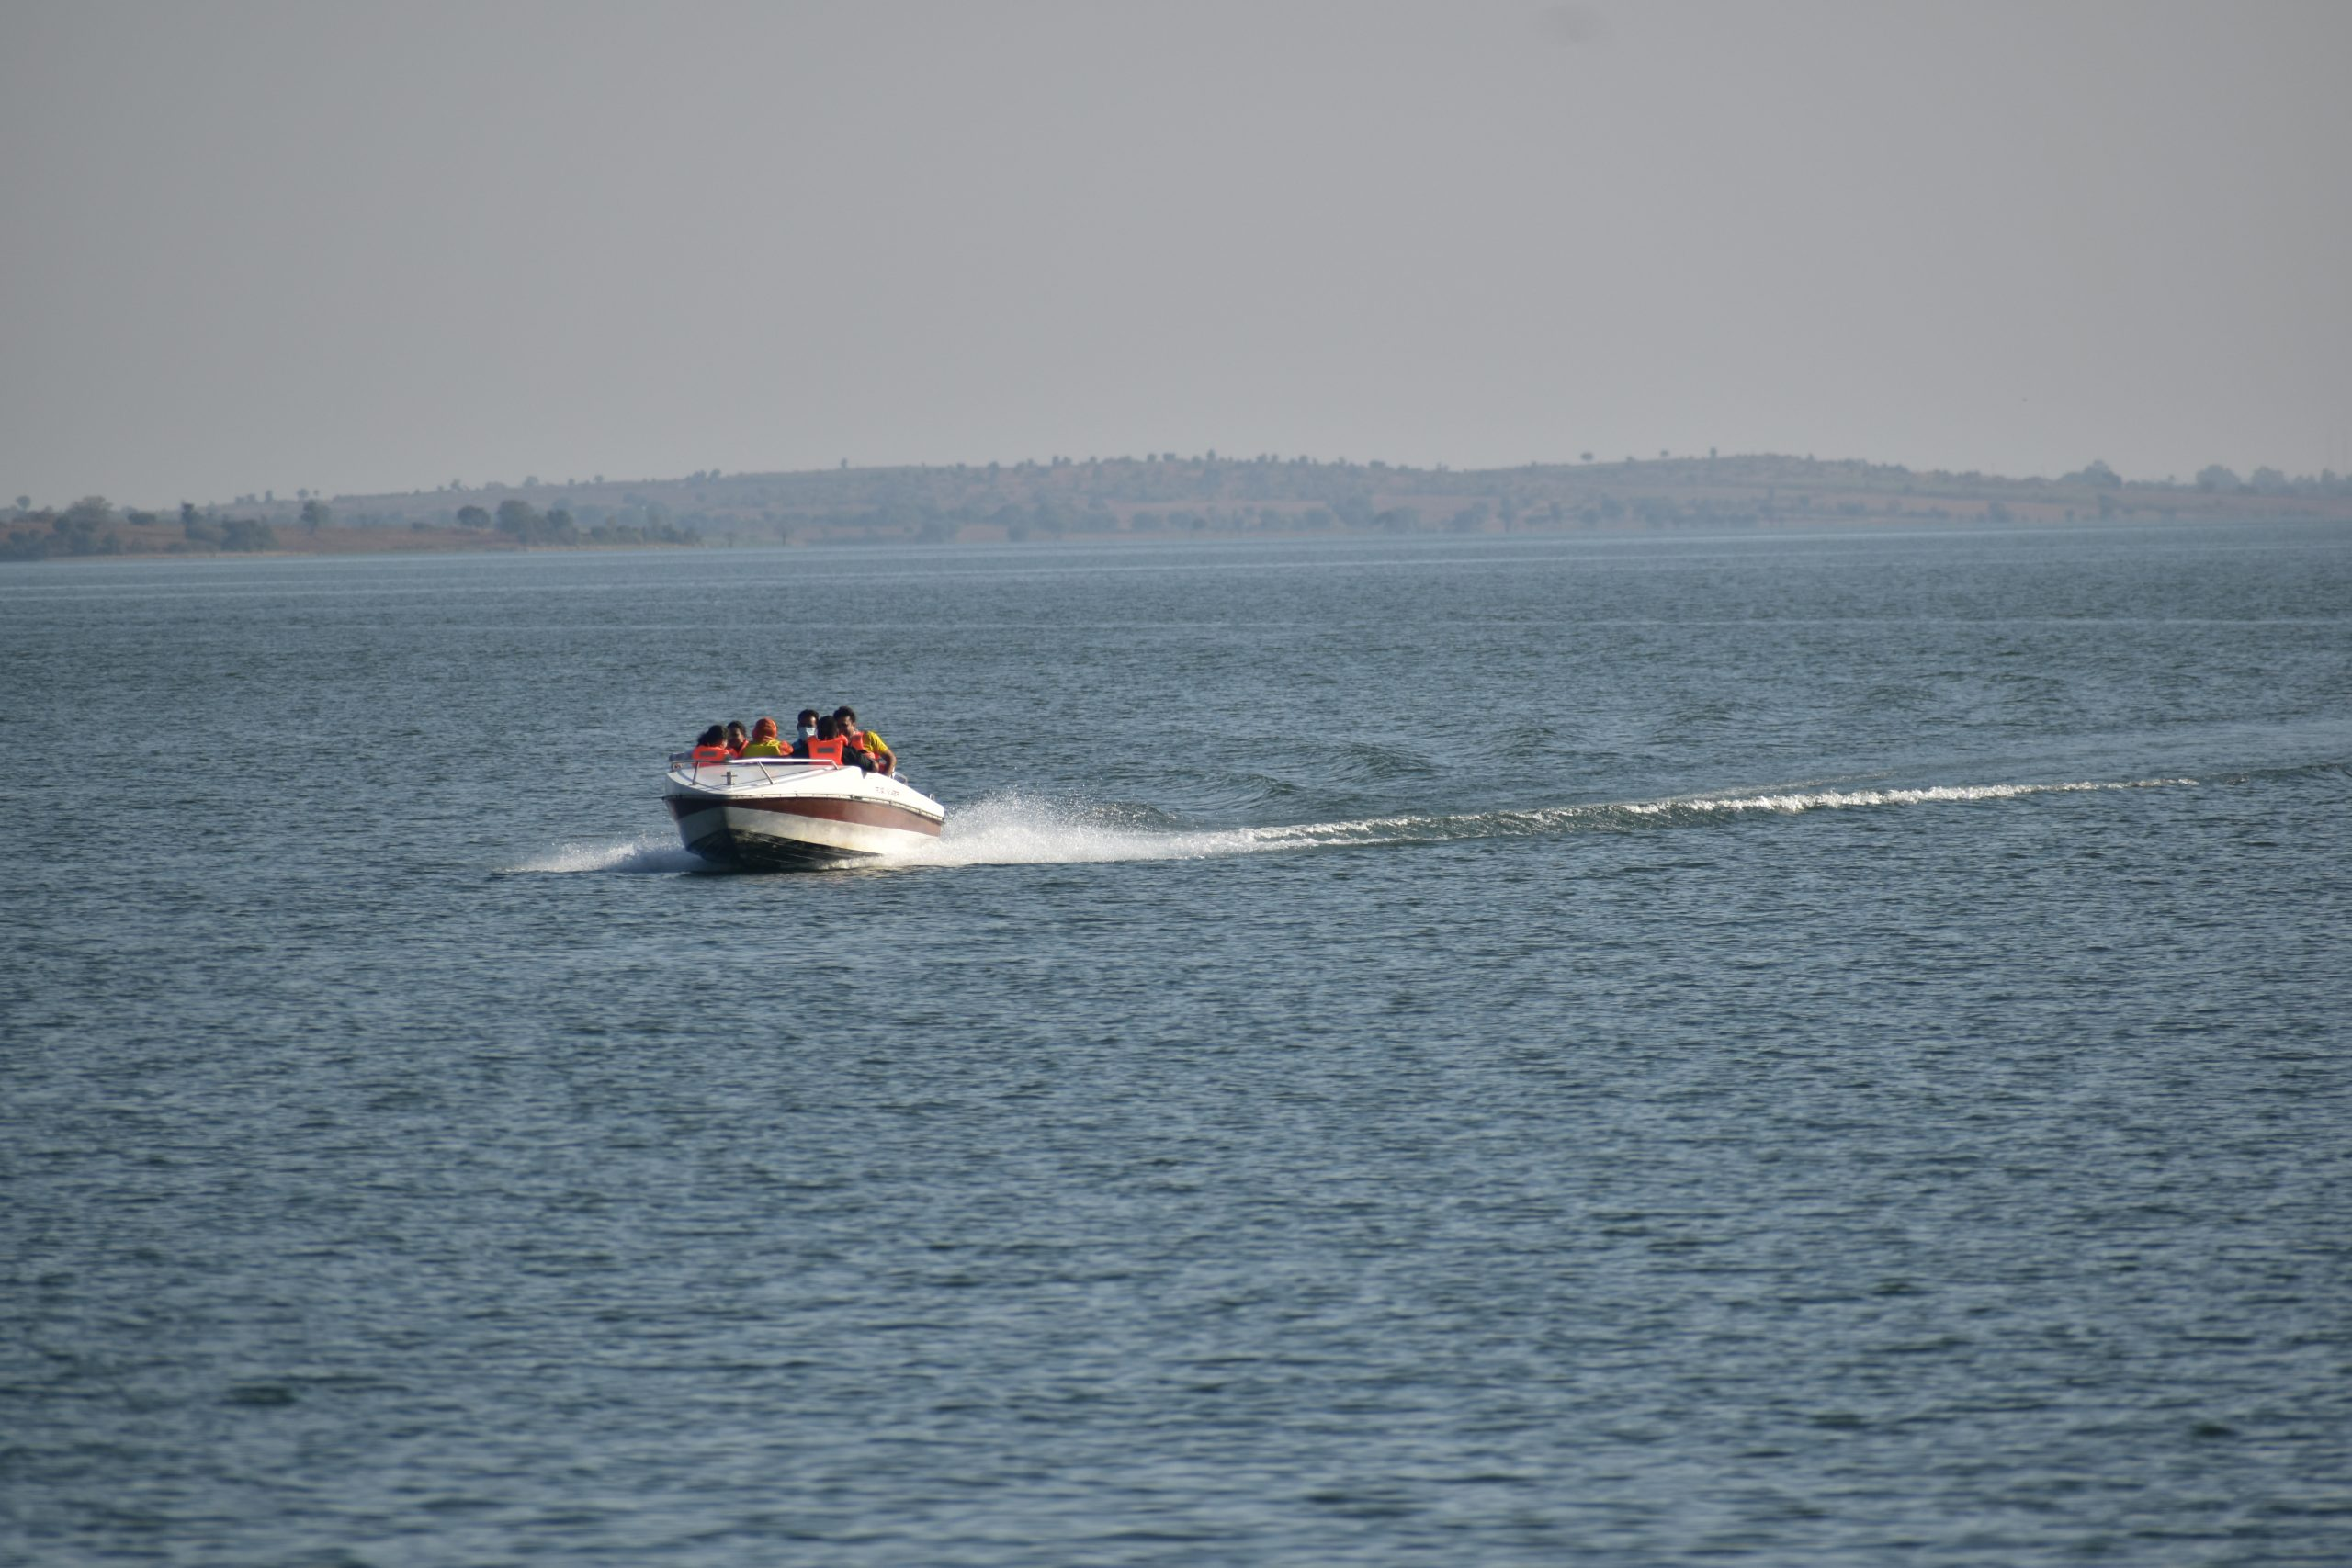 A speed boat in a sea